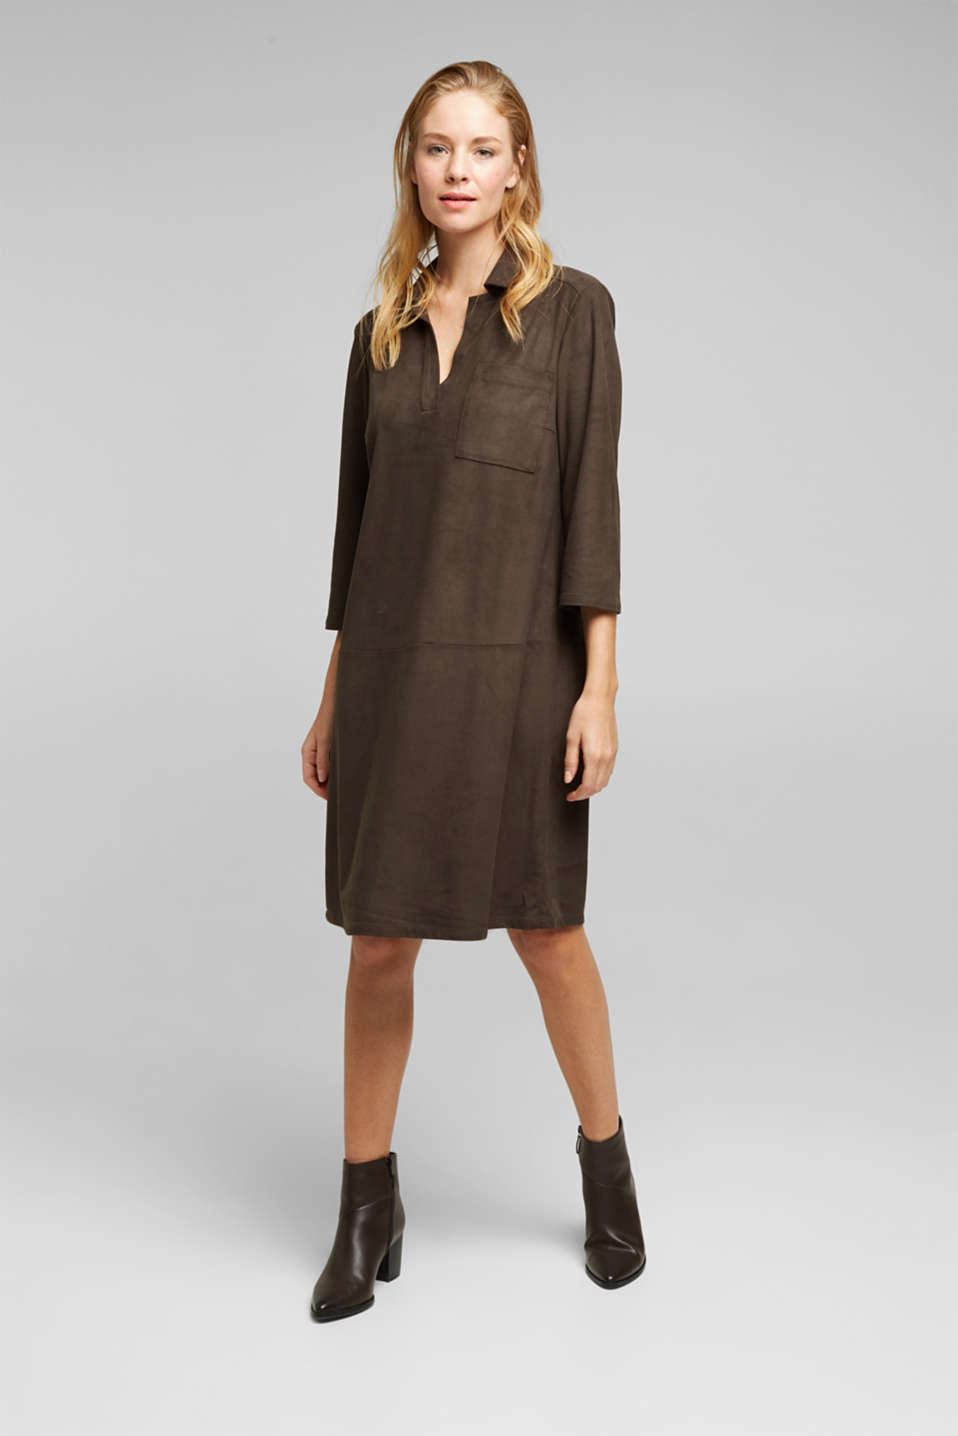 Esprit - Recycled: faux leather shirt dress